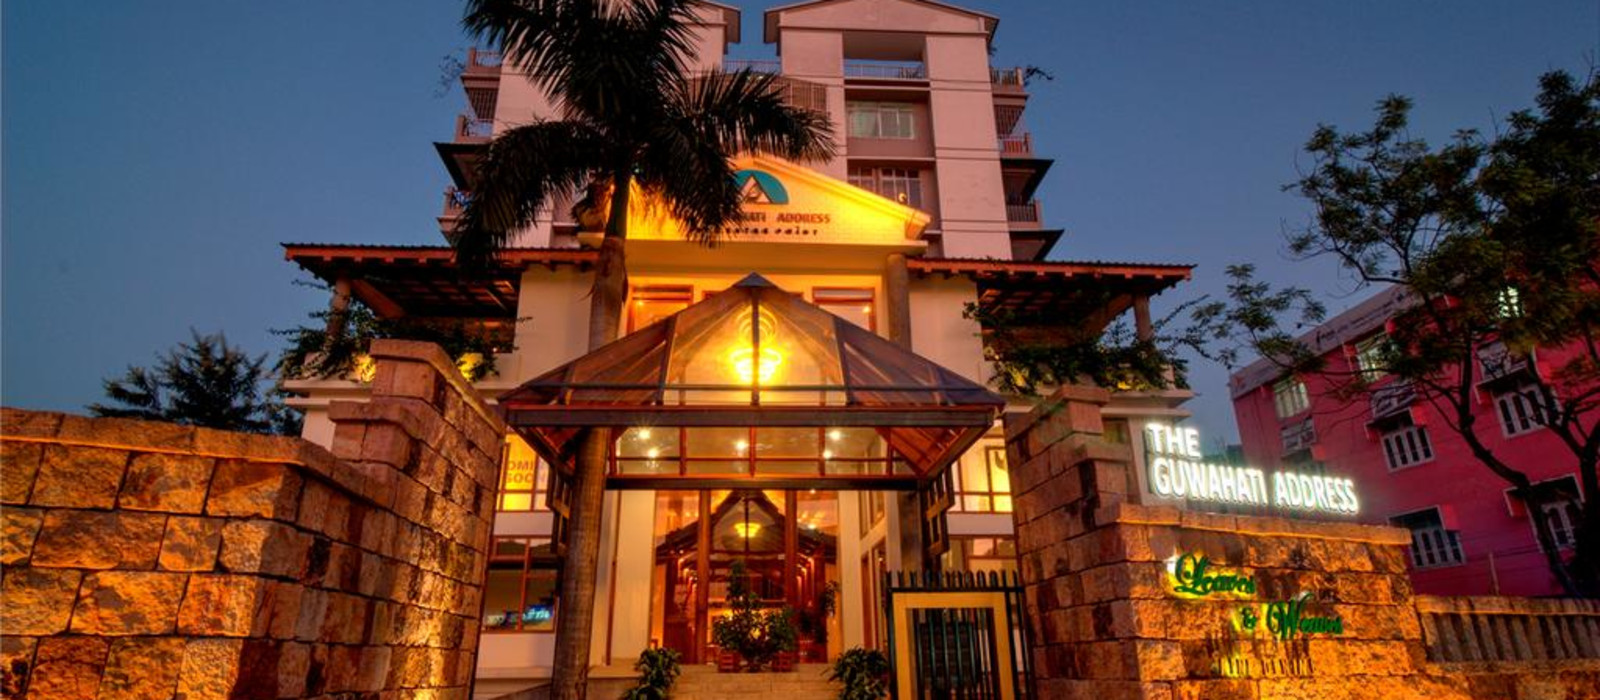 Hotel Guwahati Address Ostindien